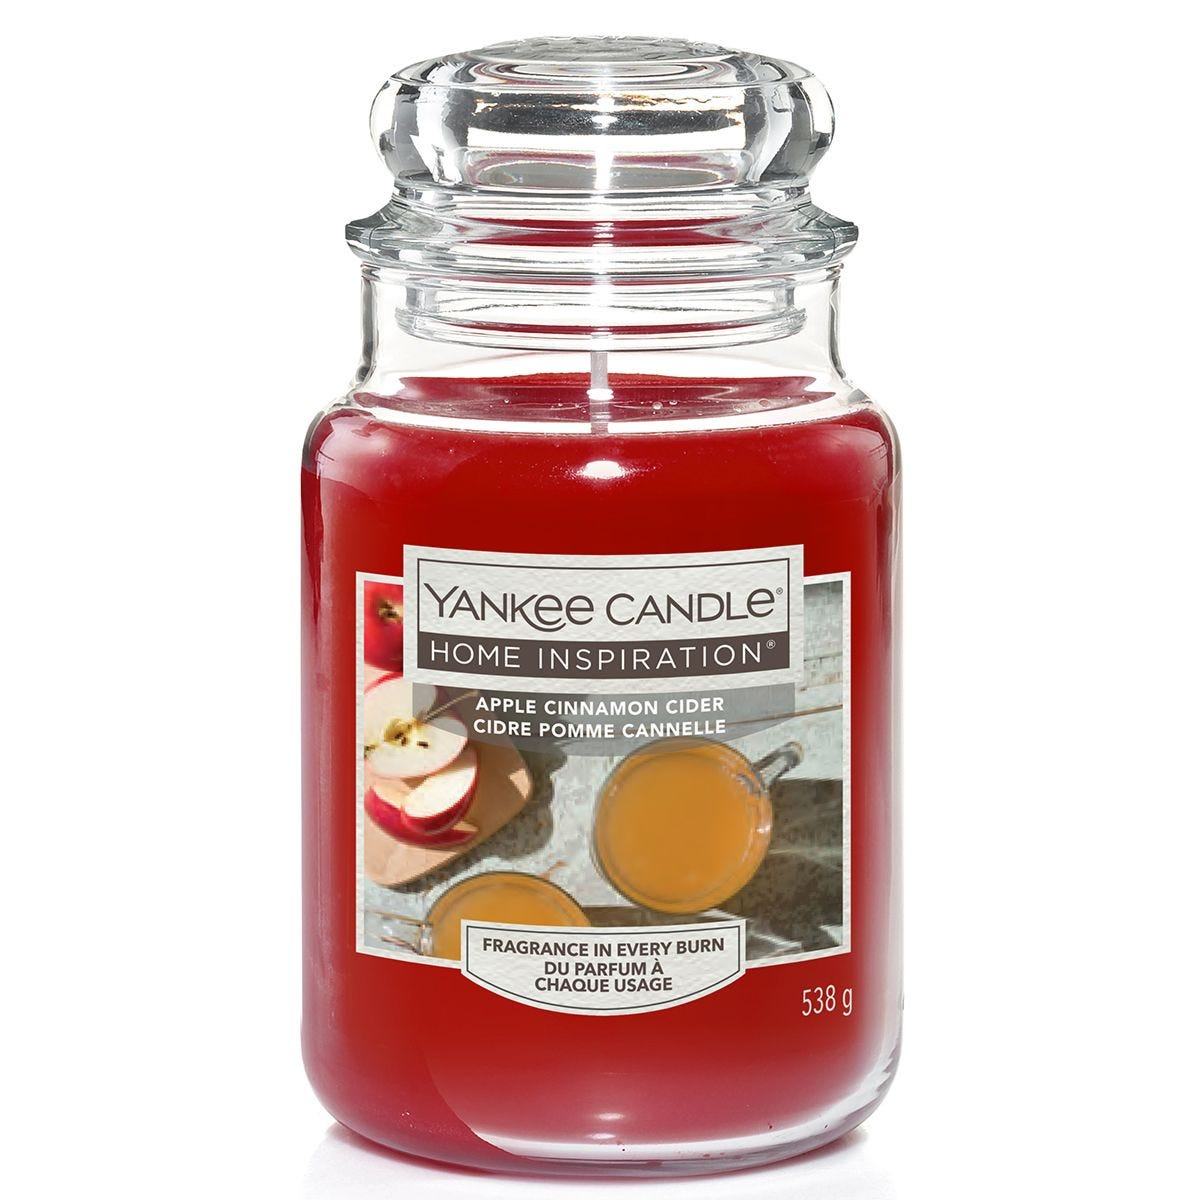 Yankee Candle Home Inspiration - Apple Cinnamon Cider